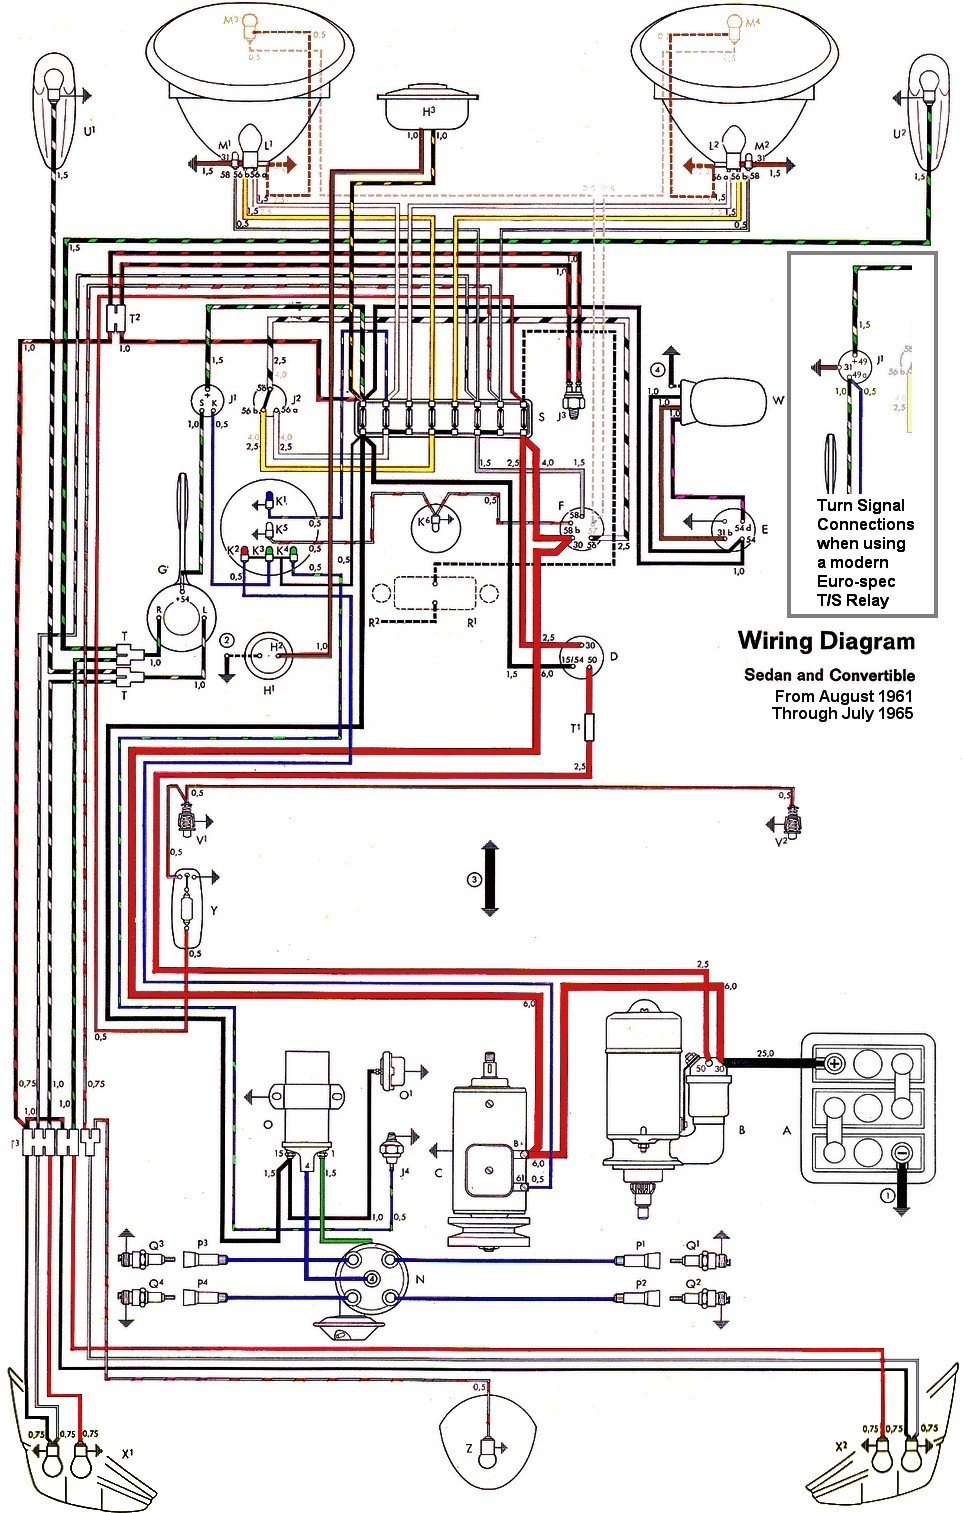 bug_62 65withinset thesamba com type 1 wiring diagrams vw beetle wiring diagram at bakdesigns.co